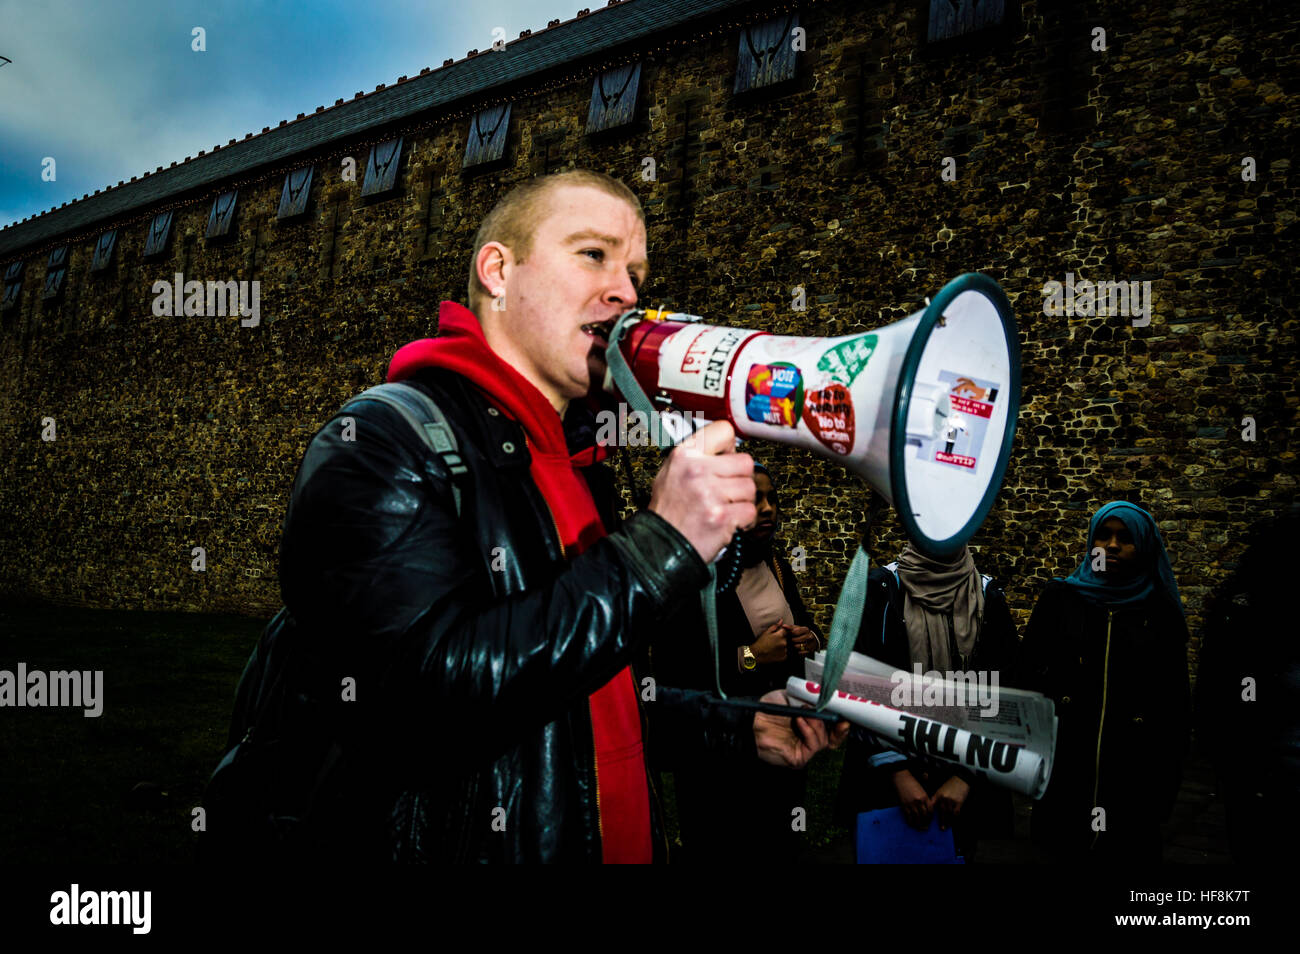 Cardiff, UK. 29th Dec, 2016. Demonstrators gather at Cardiff Castle in Wales to raise awareness and show their solidarity Stock Photo